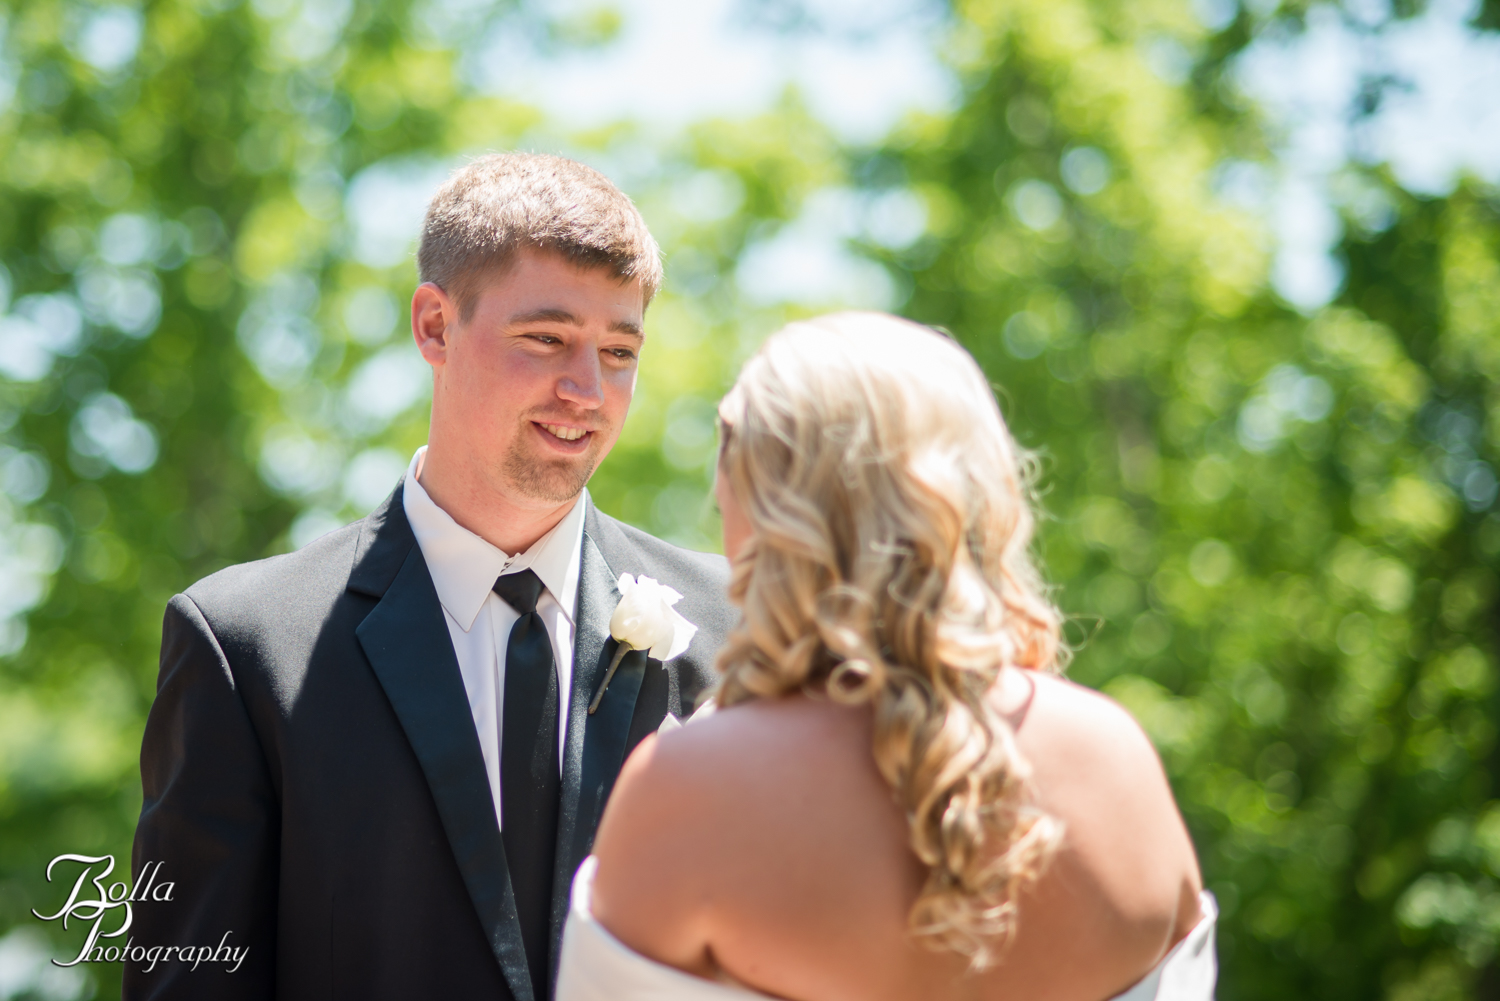 Bolla_Photography_St_Louis_wedding_photographer-0081.jpg